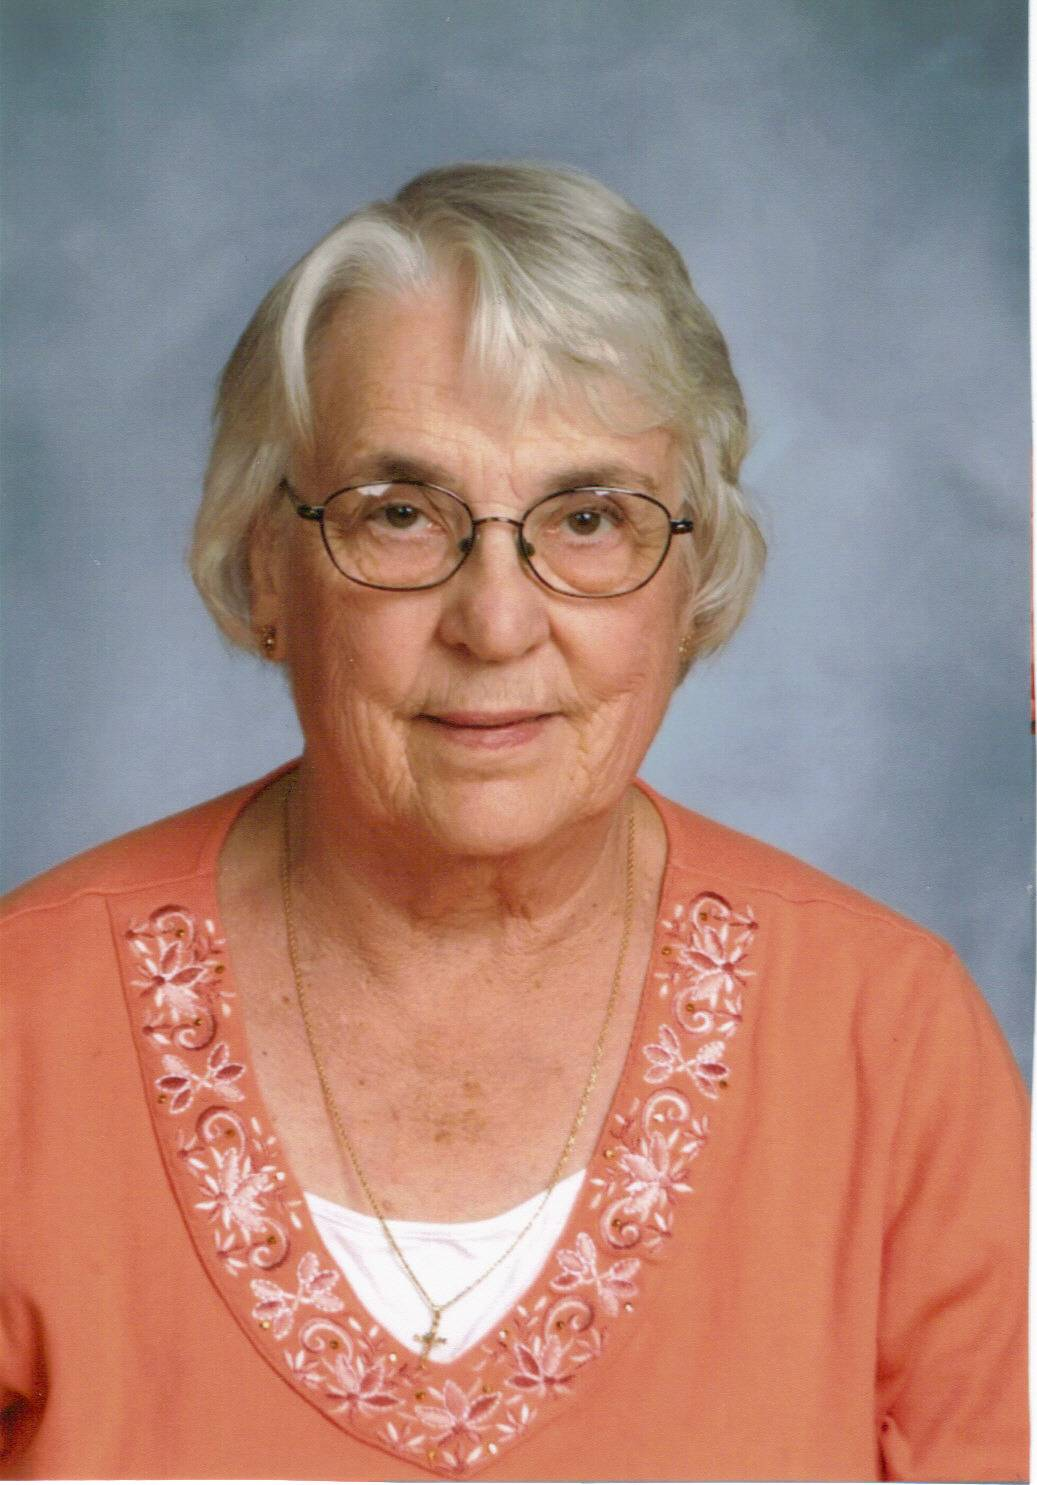 Rutland Township Supervisor Margaret Sanders is appealing her removal from the April ballot.